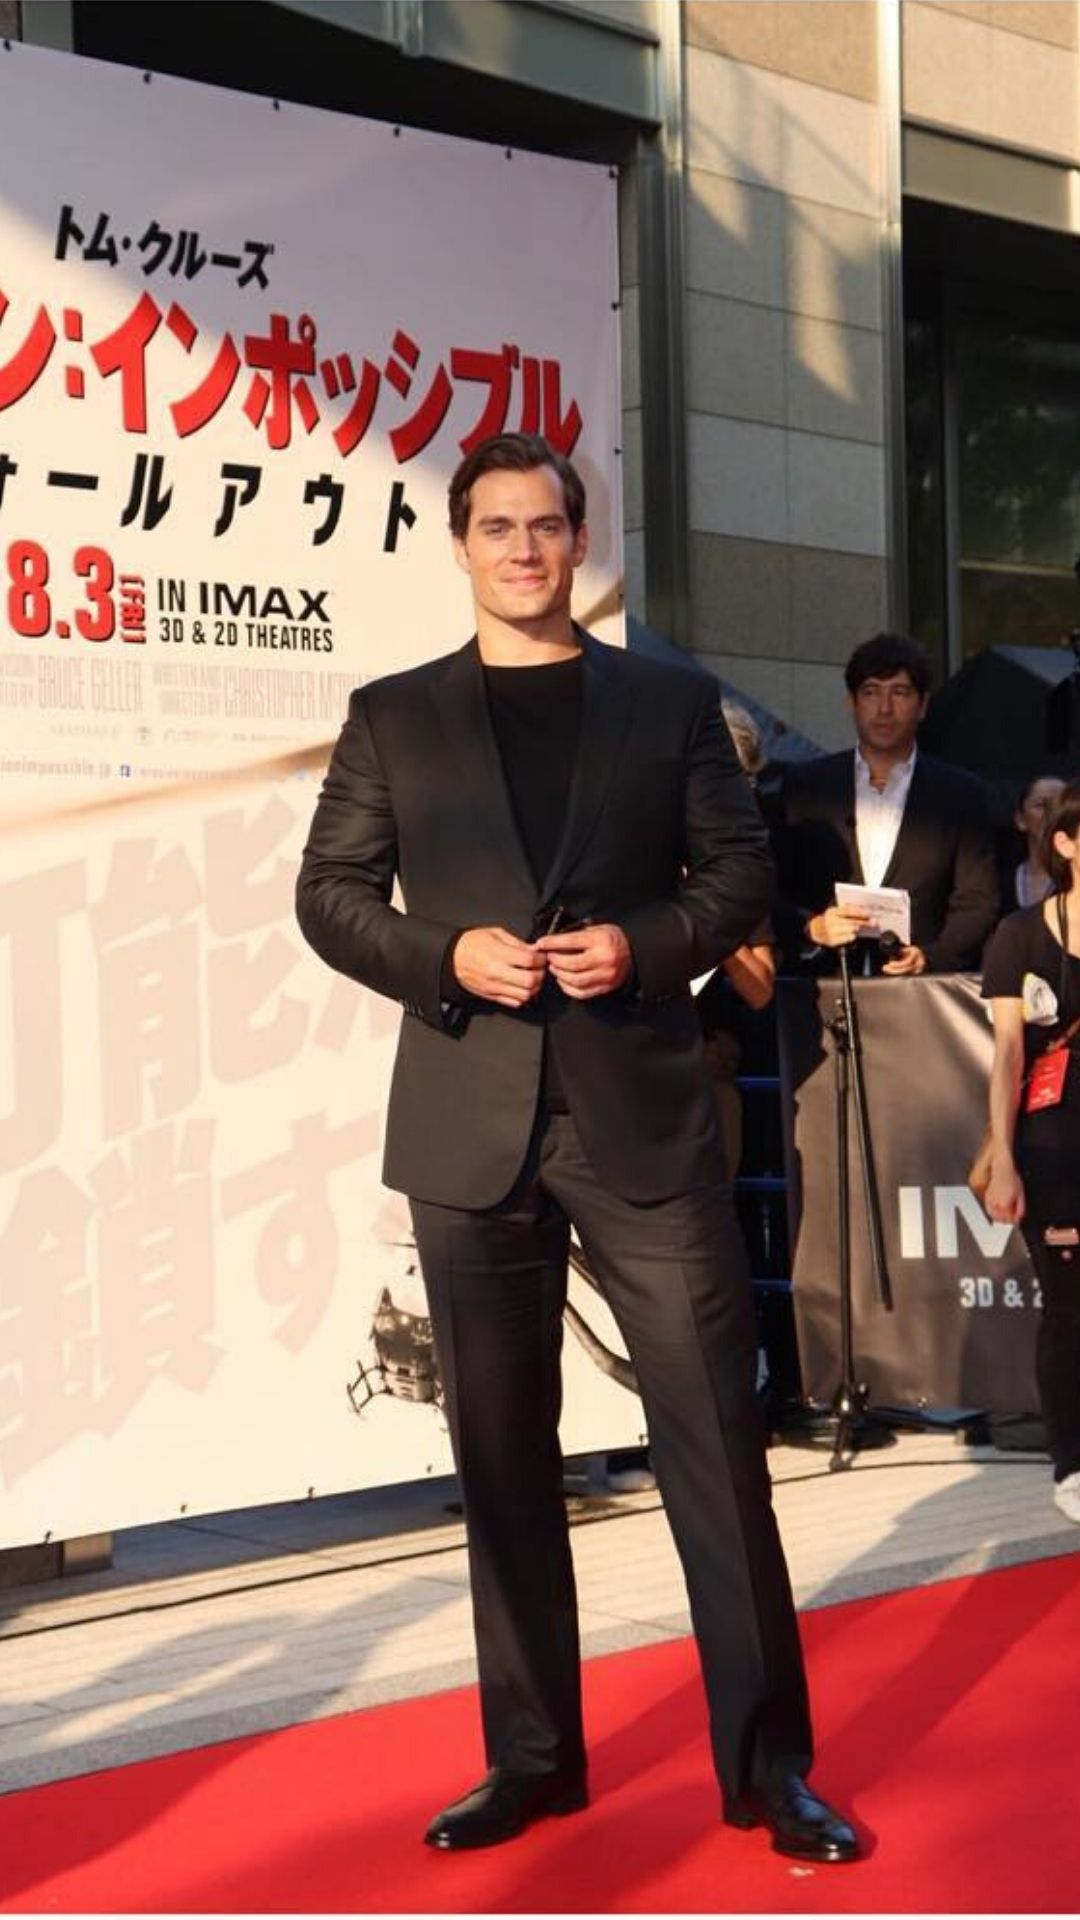 celebrity style, fashion, menswear, henry cavill, the witcher, superman, dc, esquire, 2020